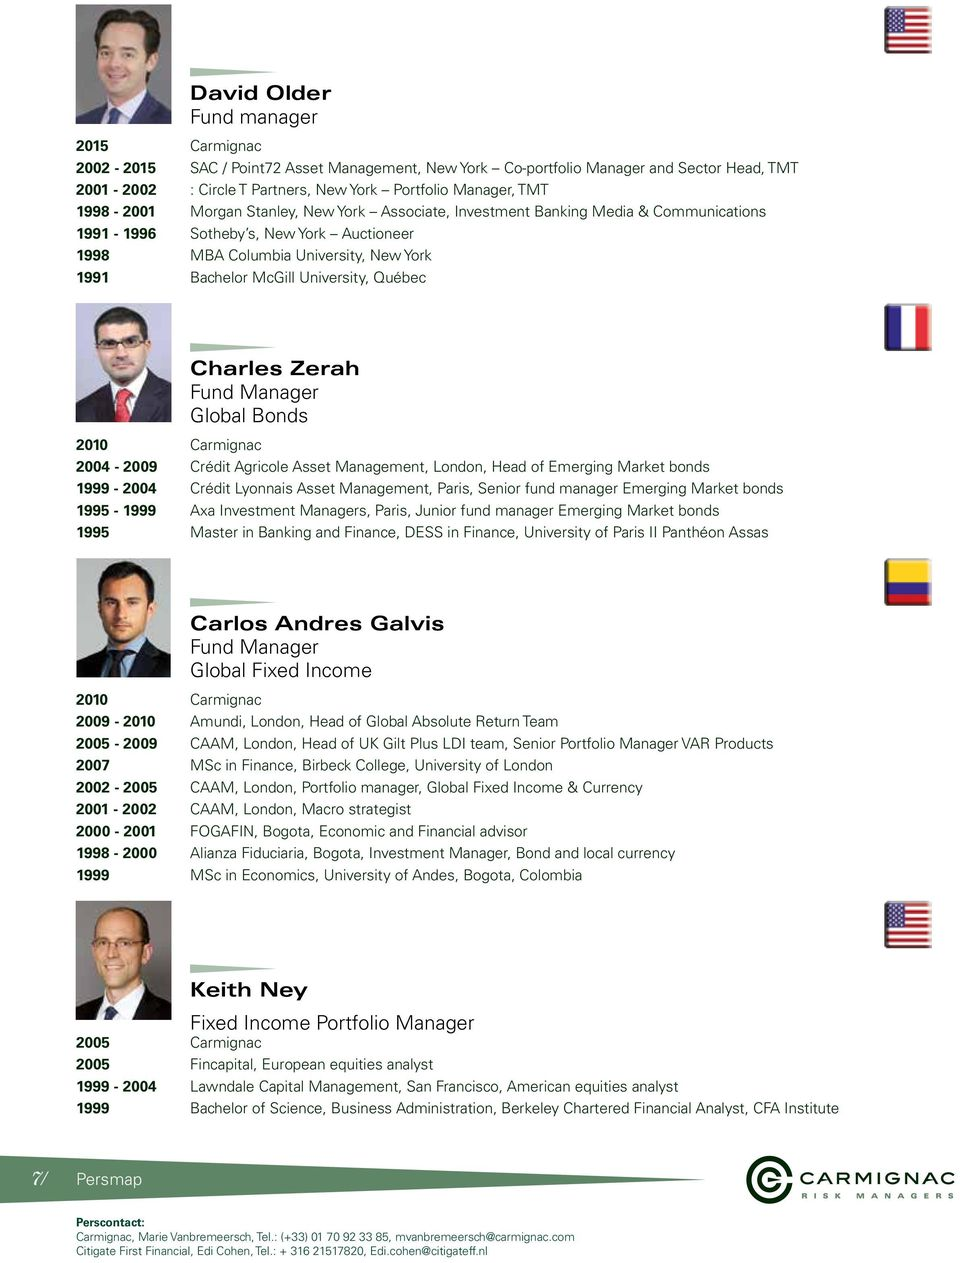 University, Québec Charles Zerah Fund Manager Global Bonds 2010 Carmignac 2004-2009 Crédit Agricole Asset Management, London, Head of Emerging Market bonds 1999-2004 Crédit Lyonnais Asset Management,